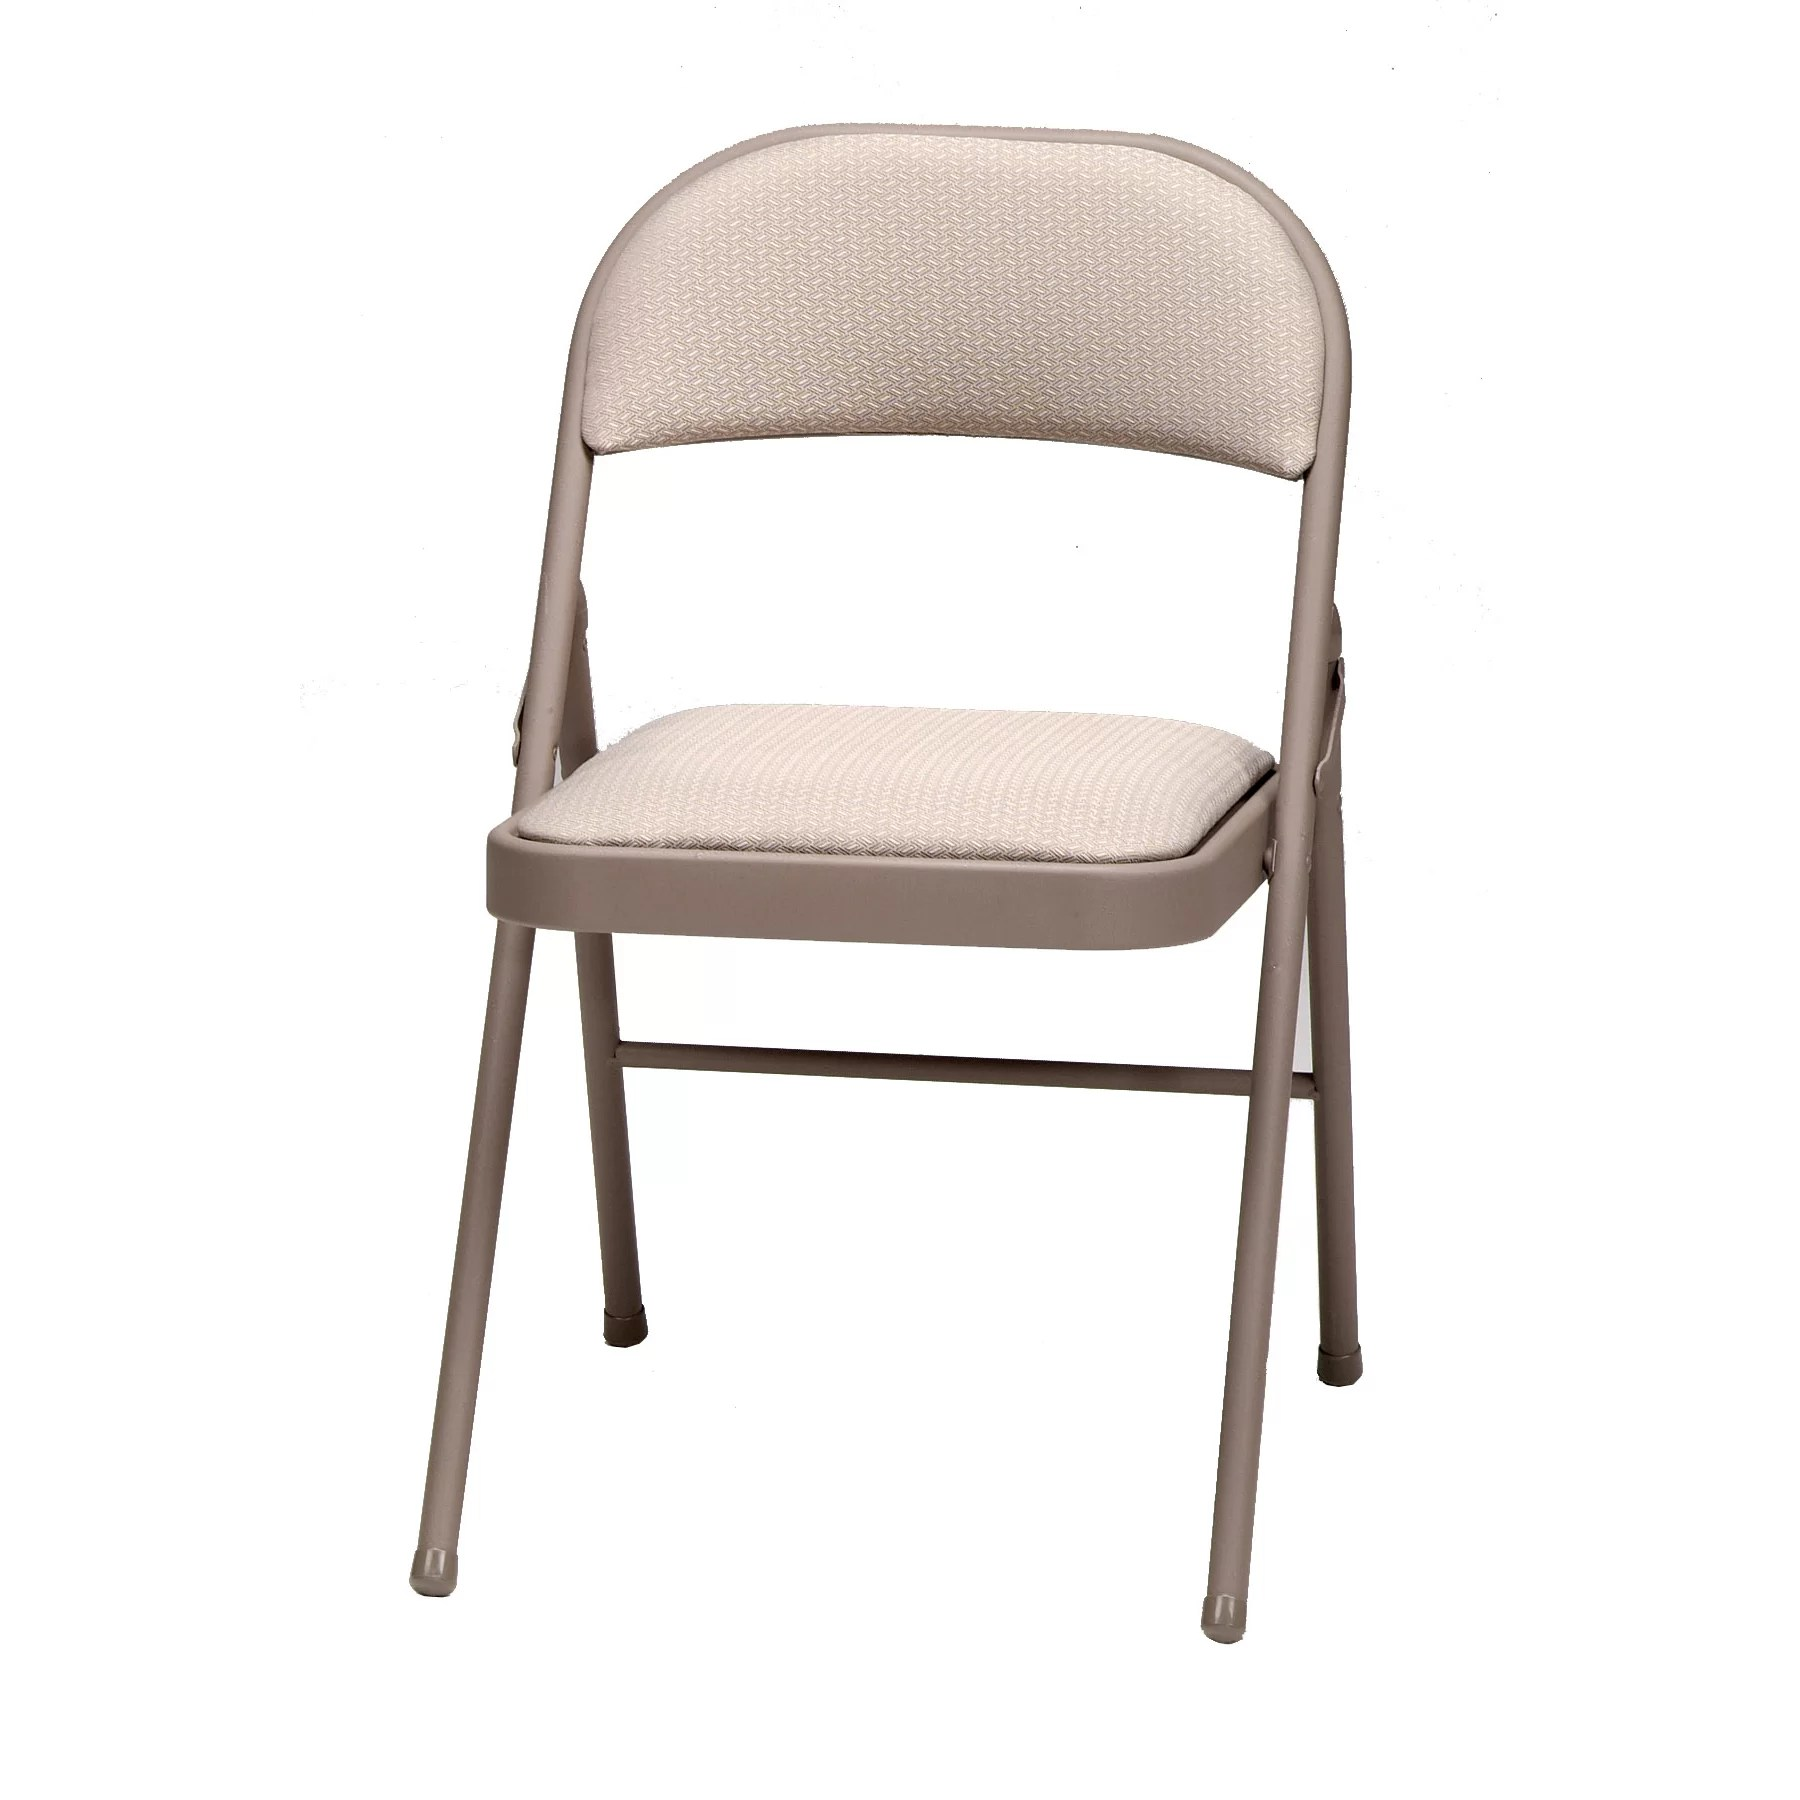 cloth padded folding chairs seat cushions for meco deluxe fabric chair and reviews wayfair